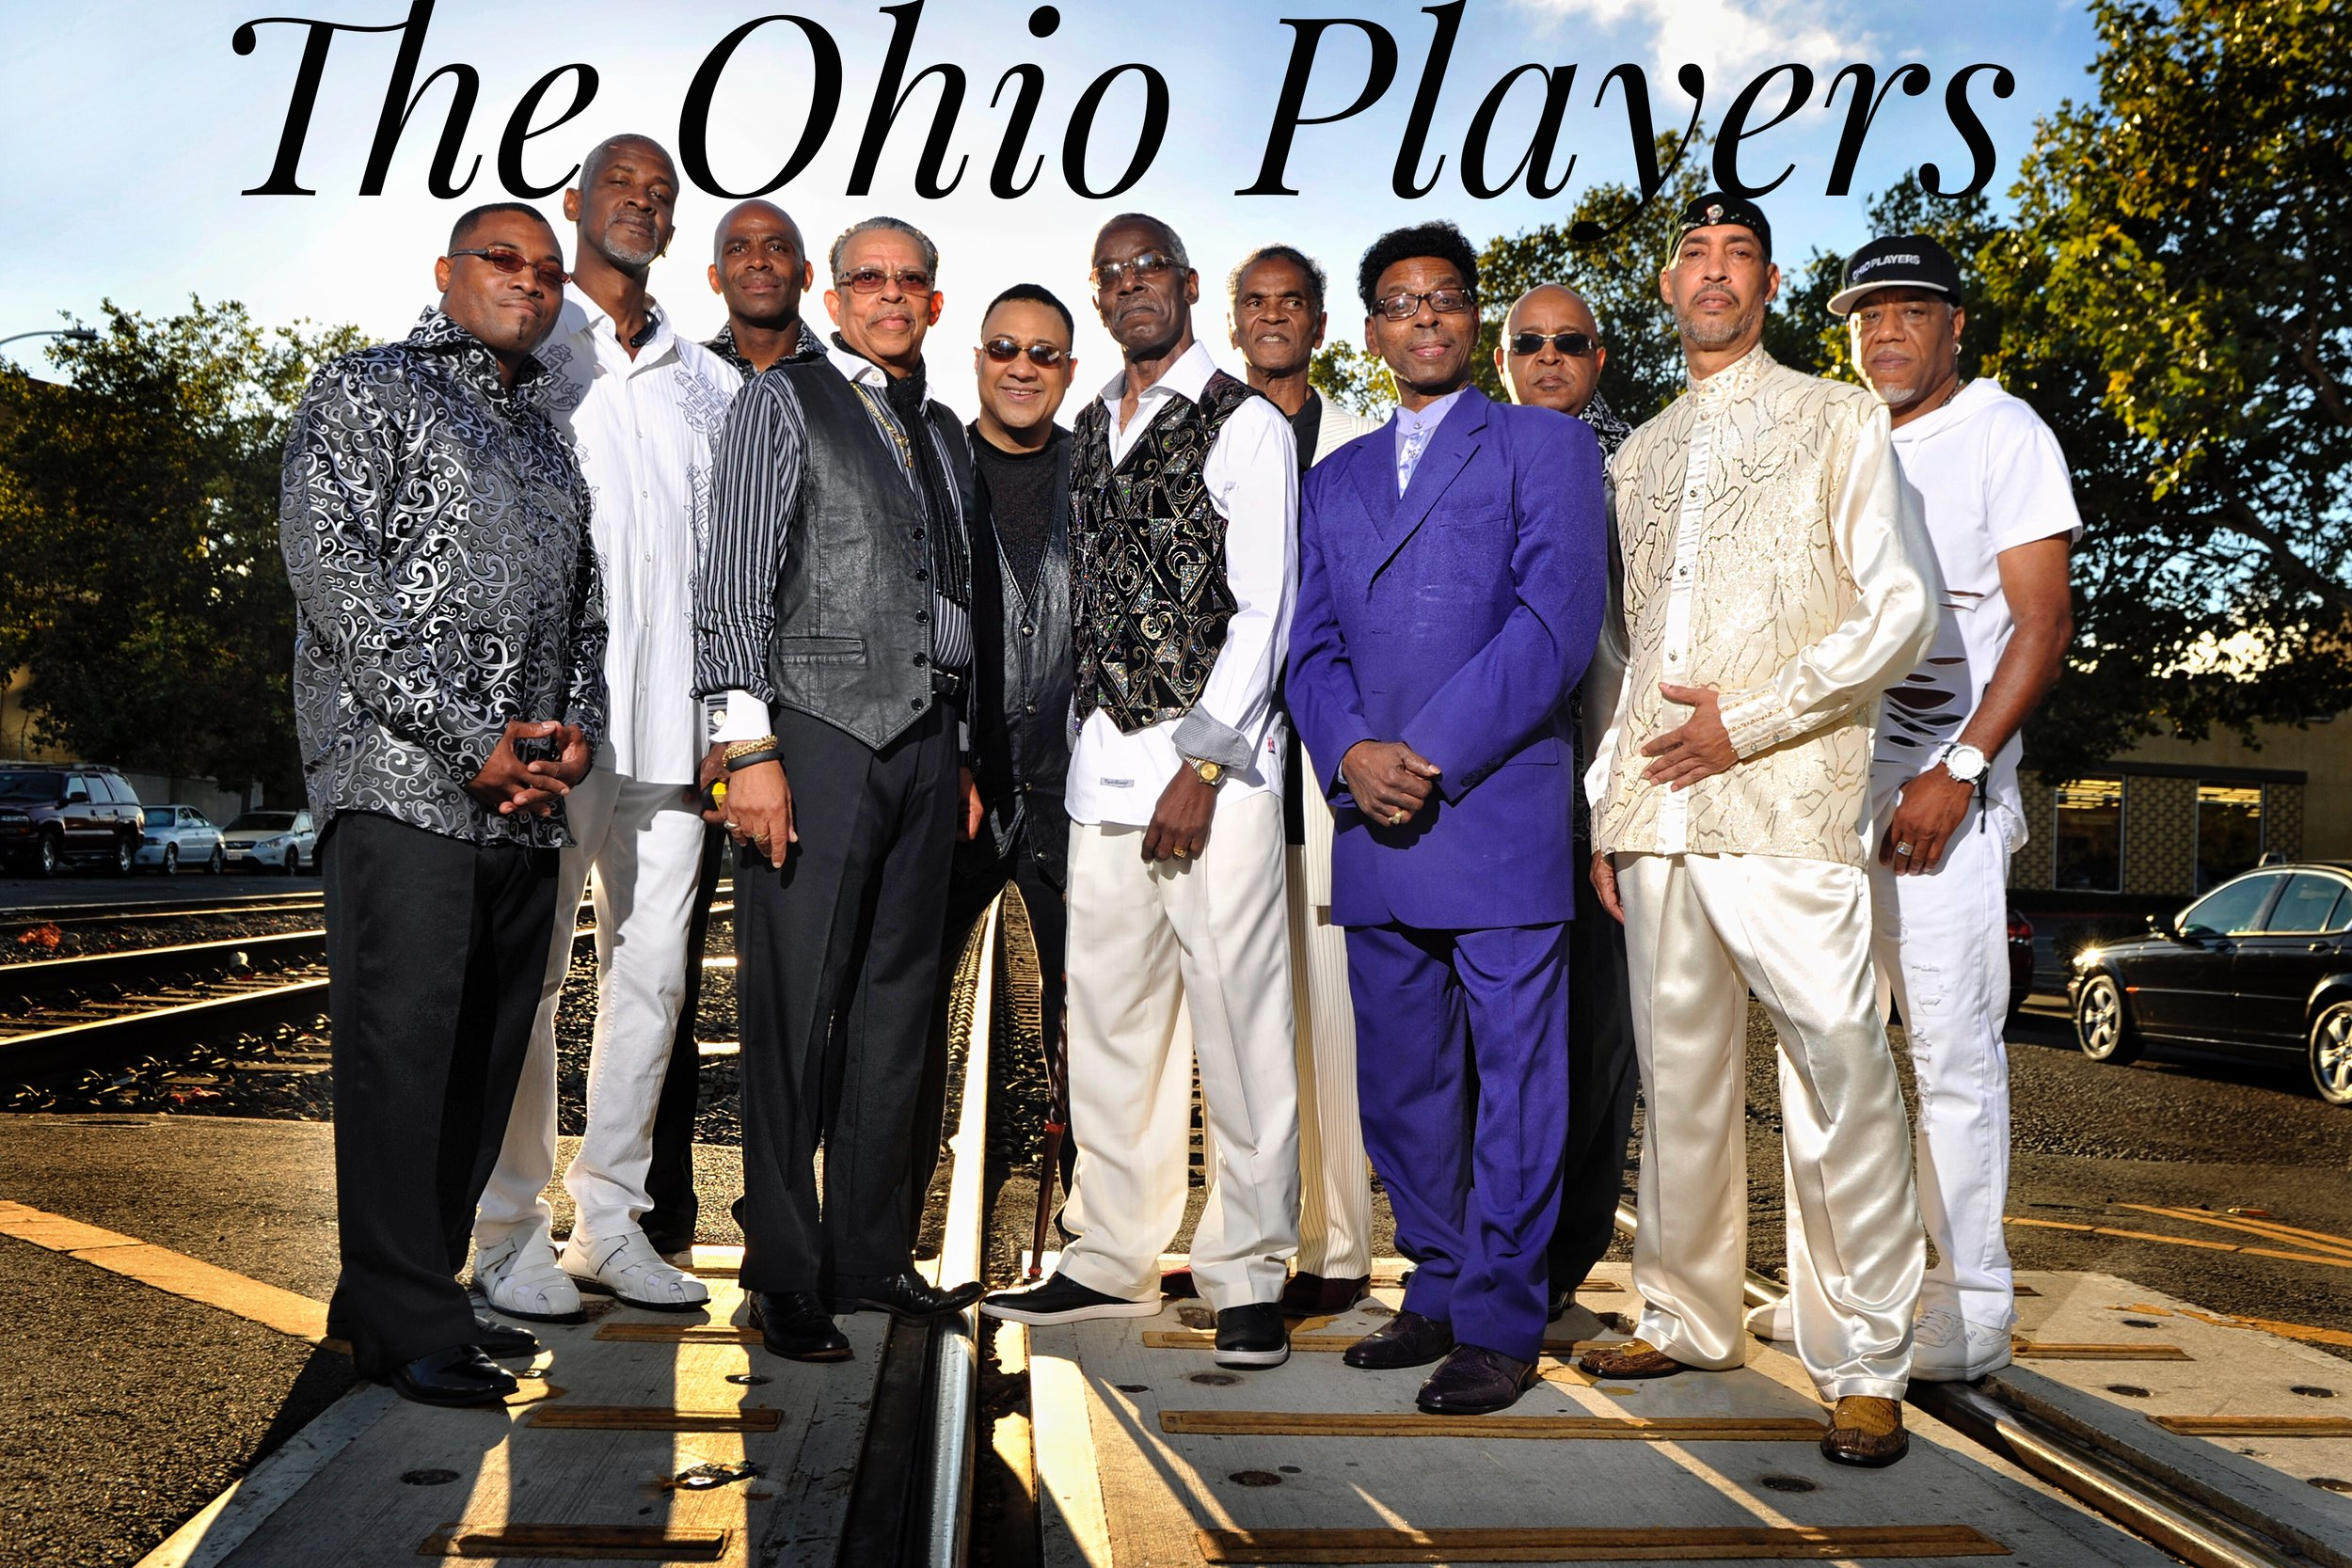 The Ohio Players -